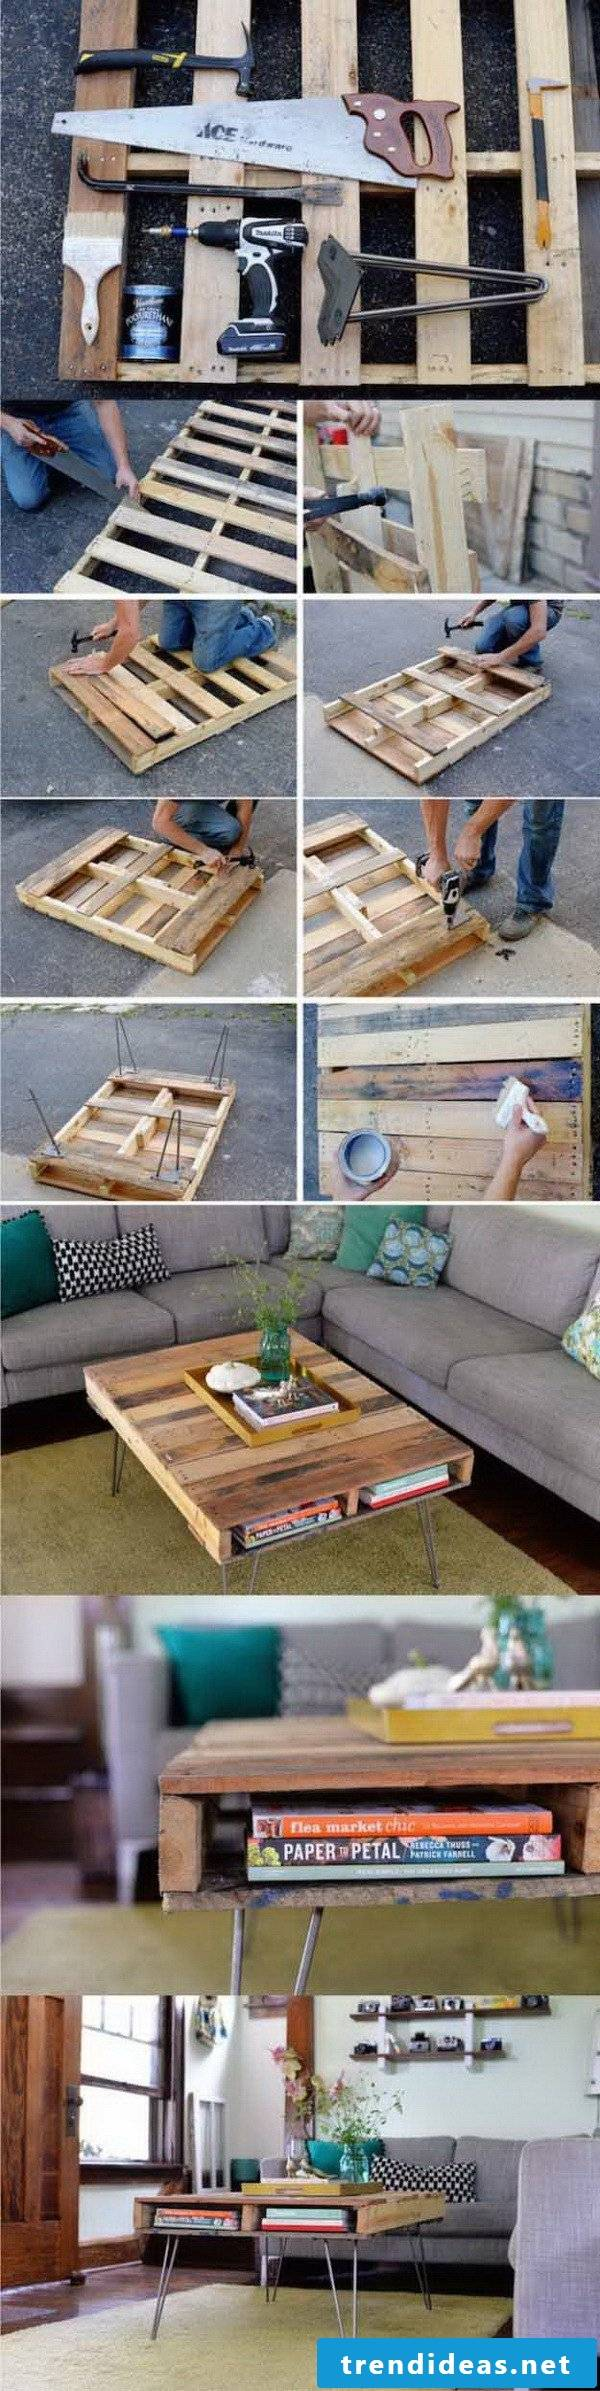 Do it yourself ideas: DIY furniture made of pallets